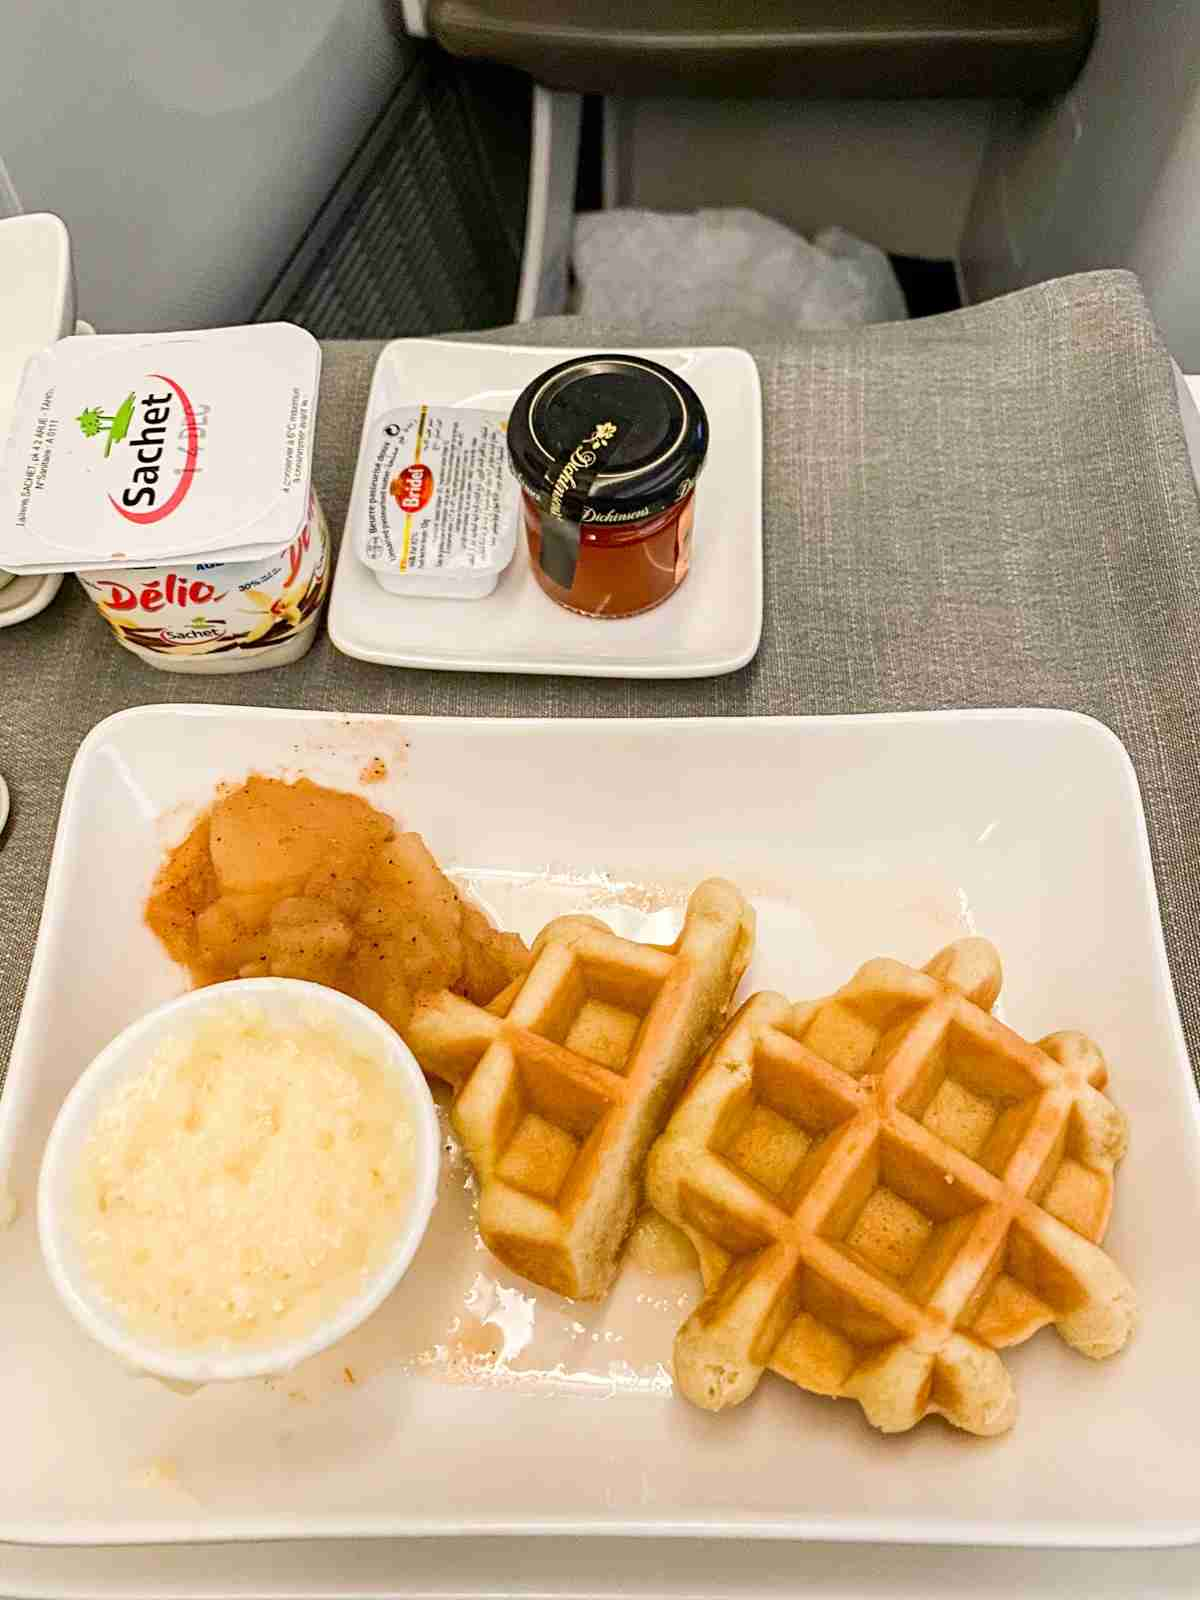 Morning waffles on Air Tahiti Nui (Photo by Summer Hull/The Points Guy)